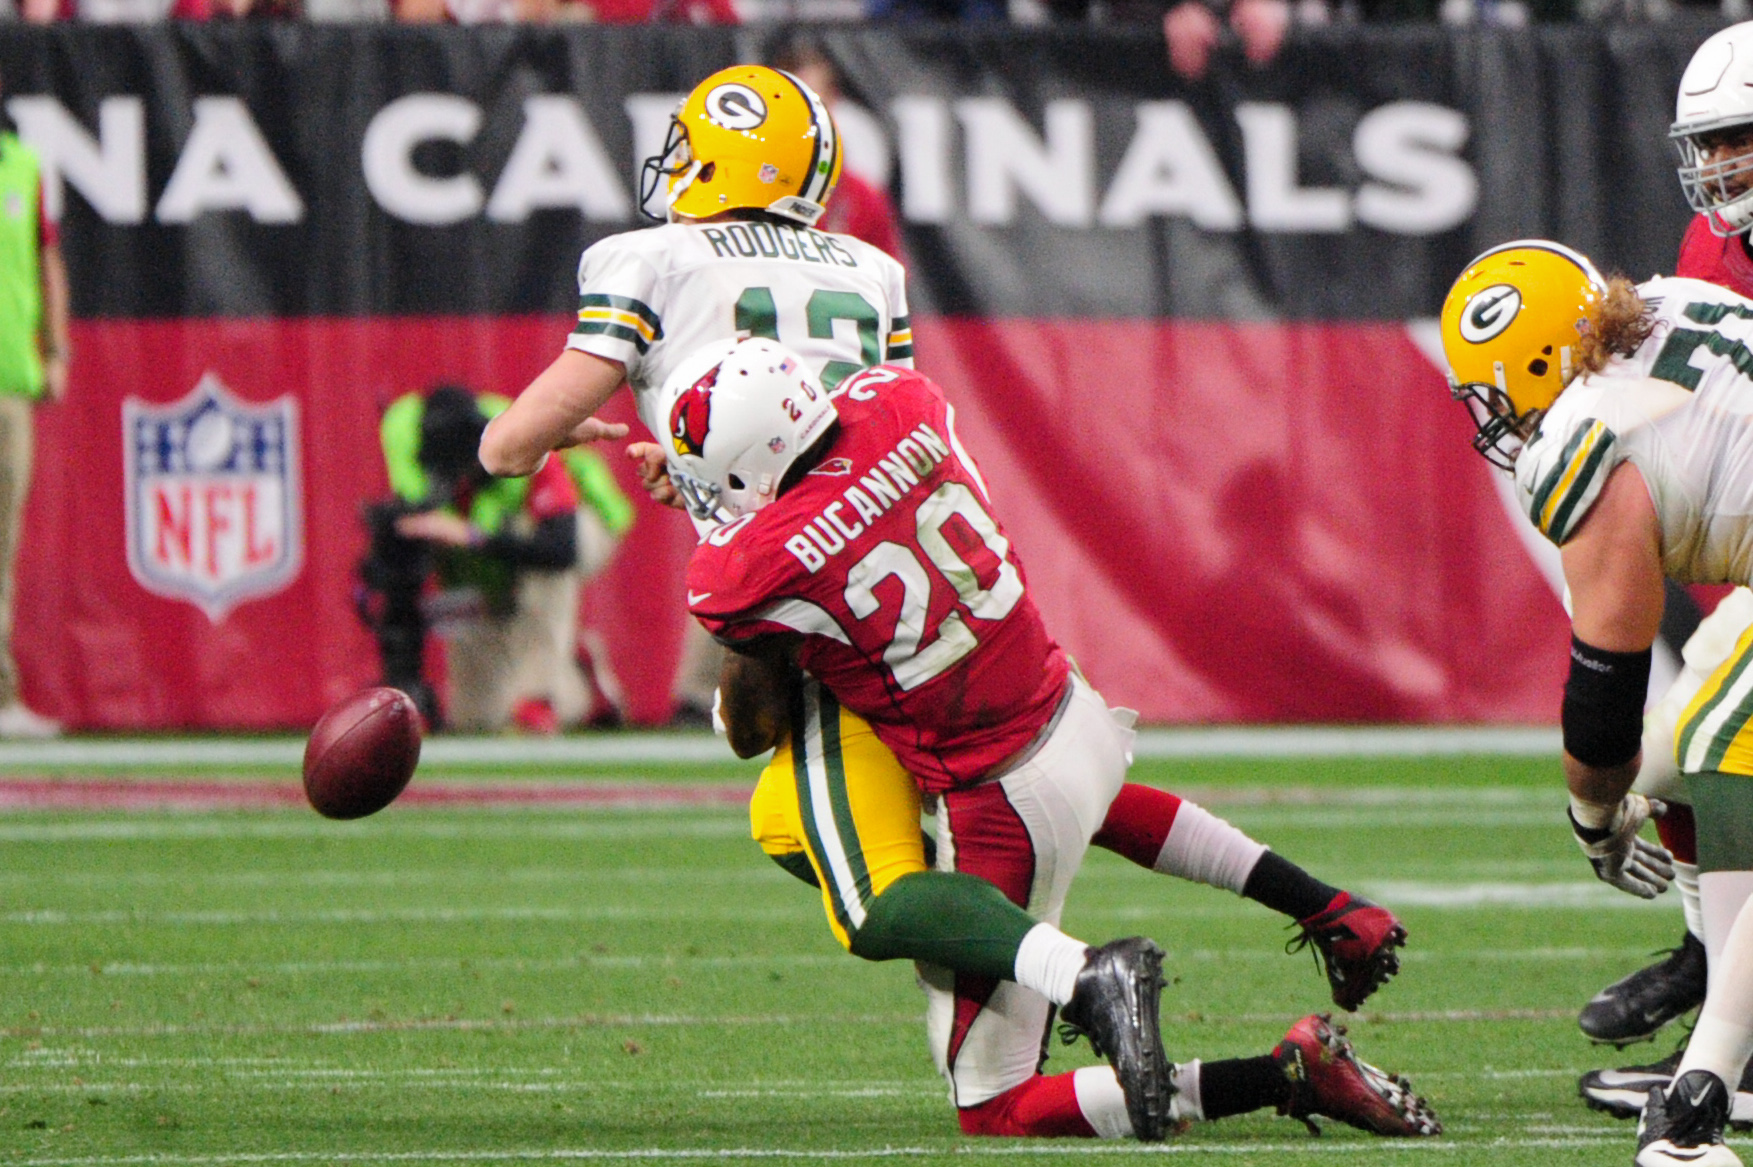 After blowout loss, Aaron Rodgers says Packers will be ready for playoffs